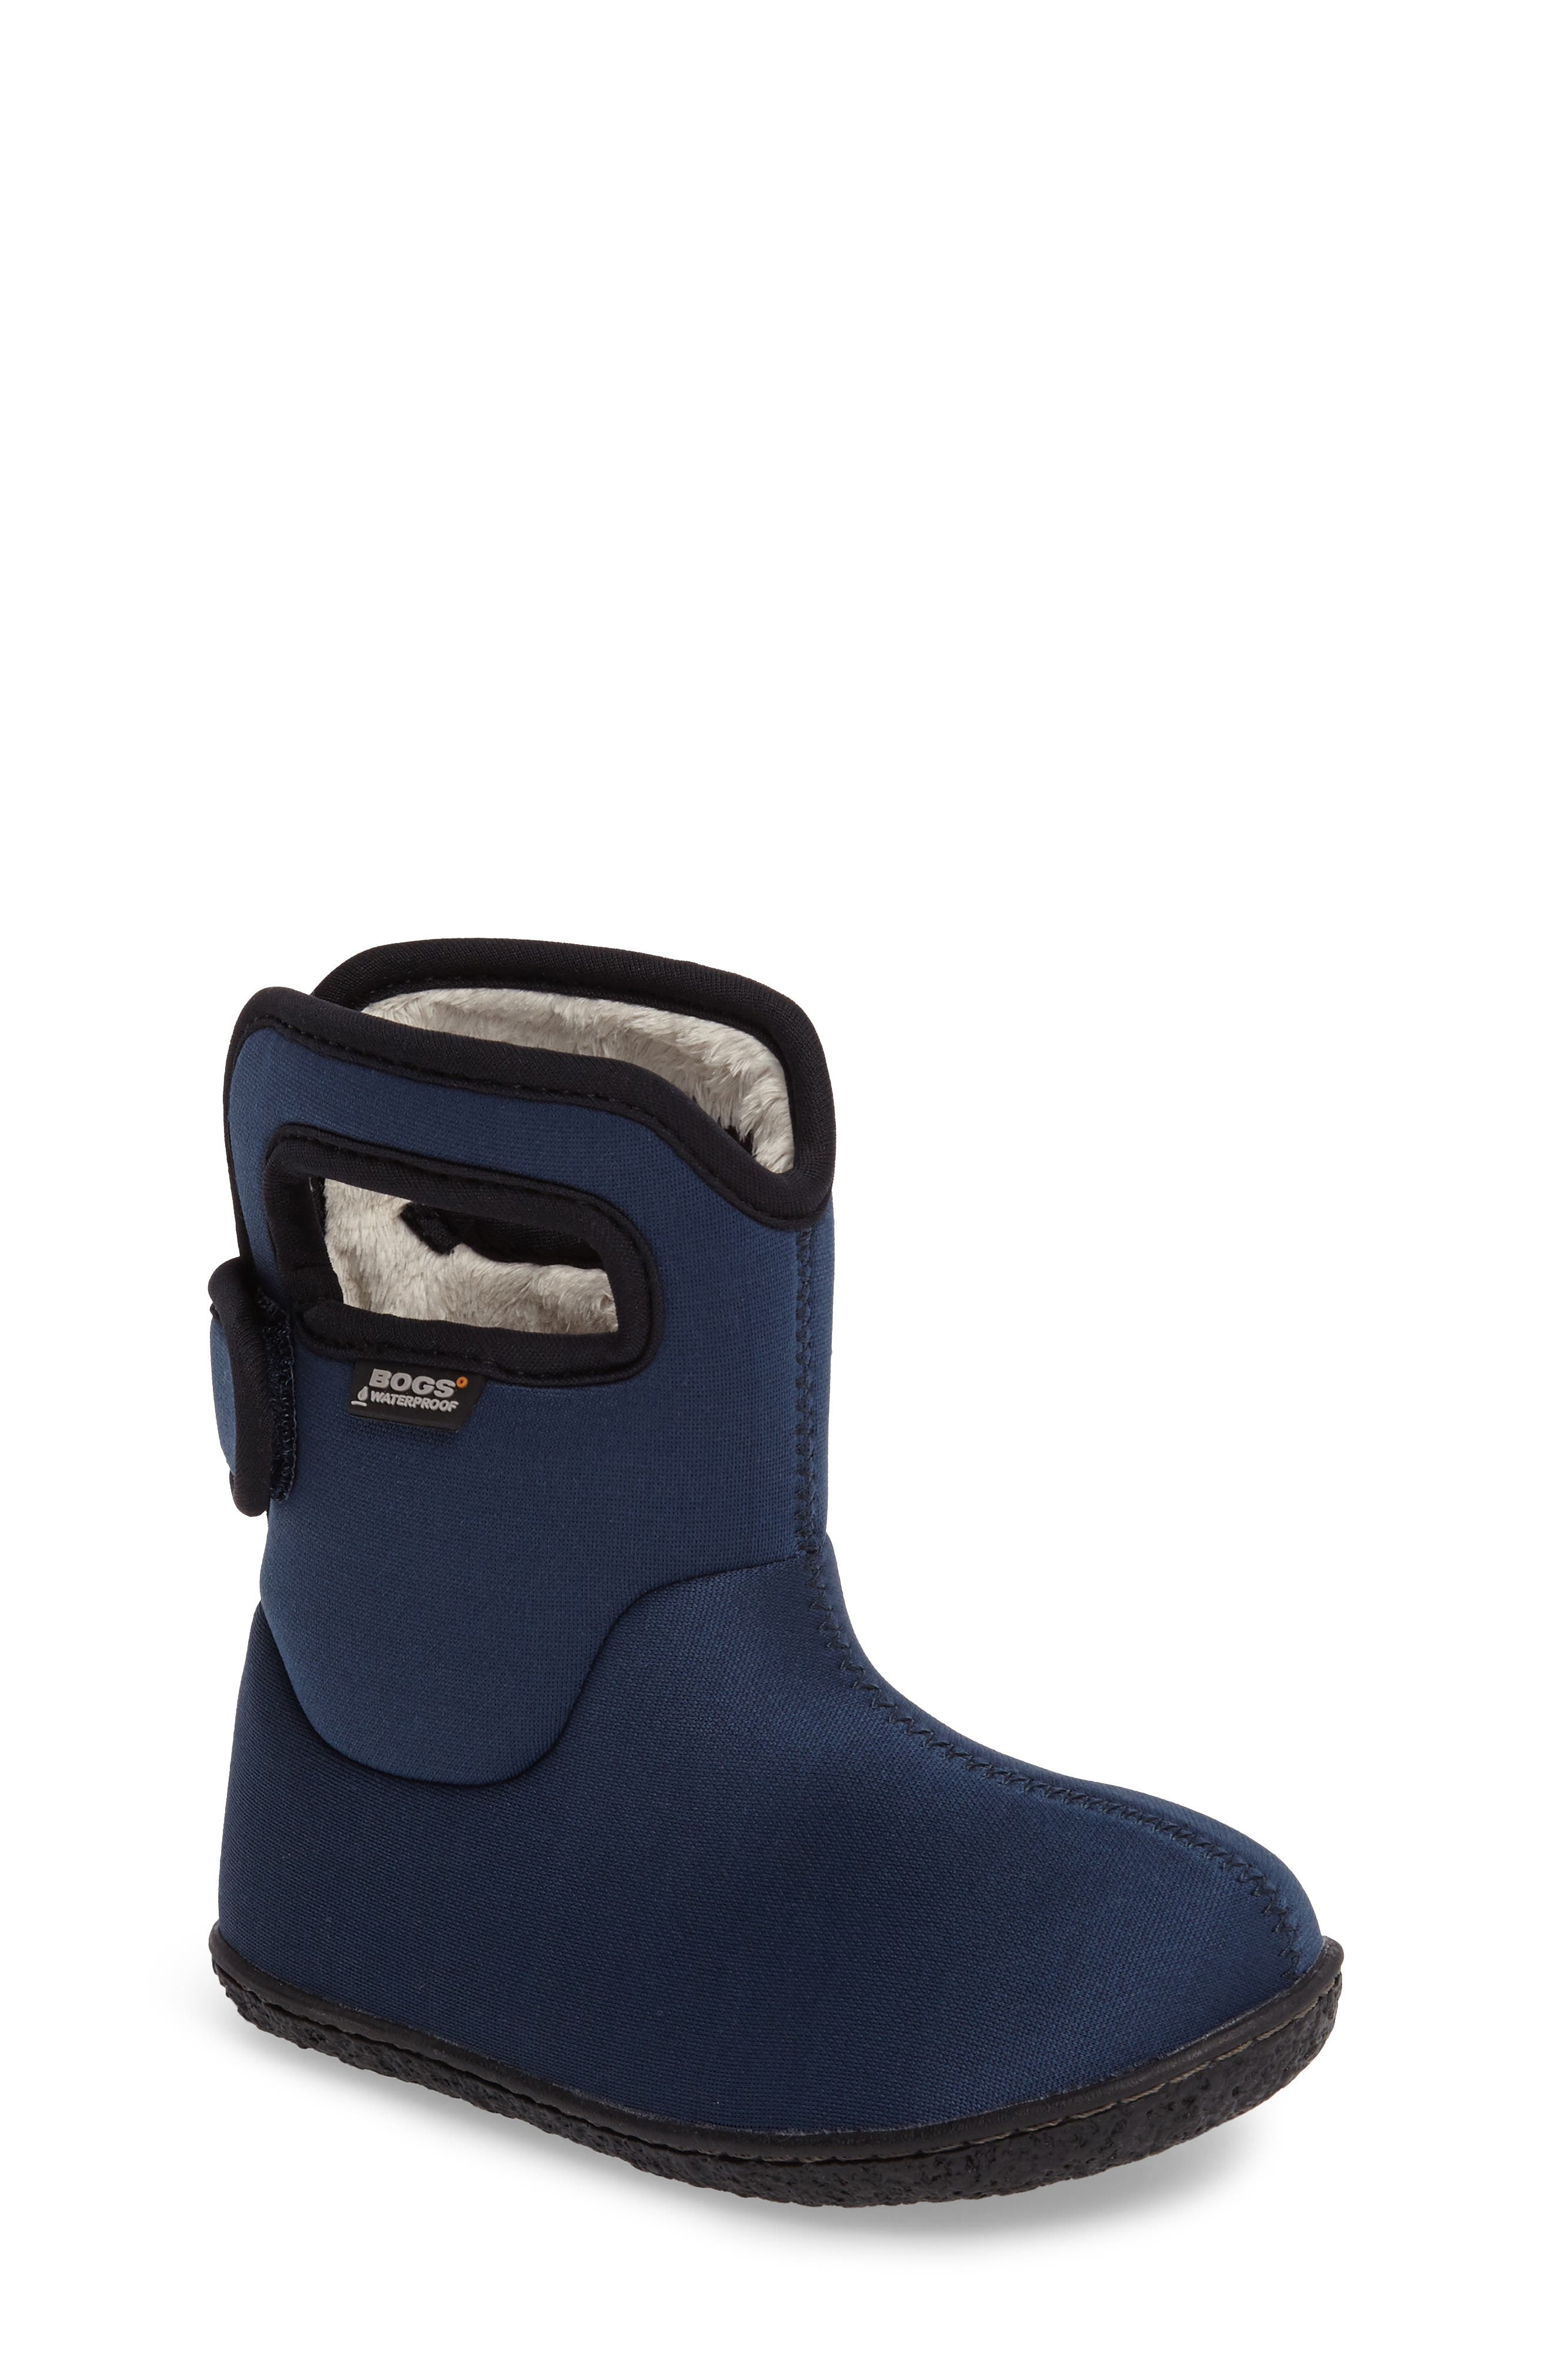 Main Image - Bogs Classic Solid Insulated Waterproof Rain Boot (Baby, Walker & Toddler)